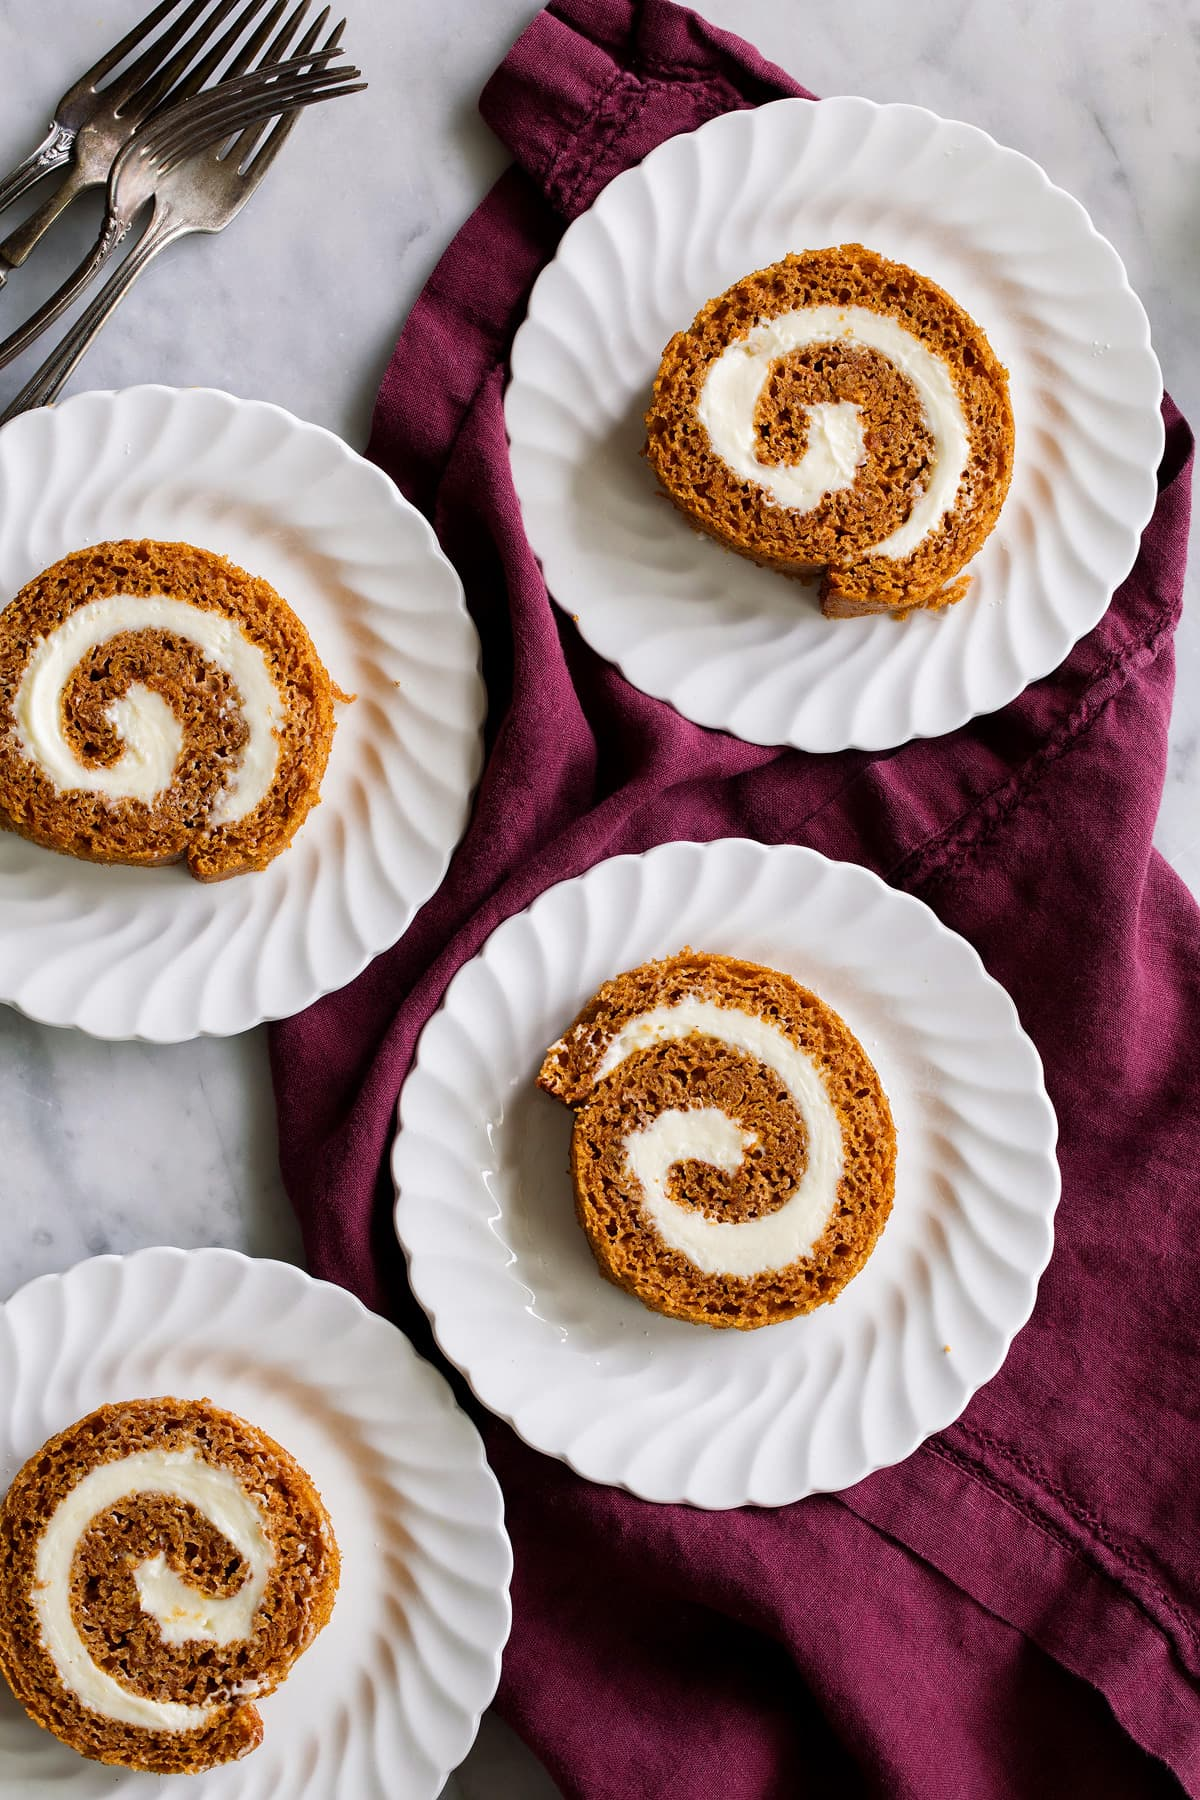 Four slices of pumpkin roll on a dessert plate.